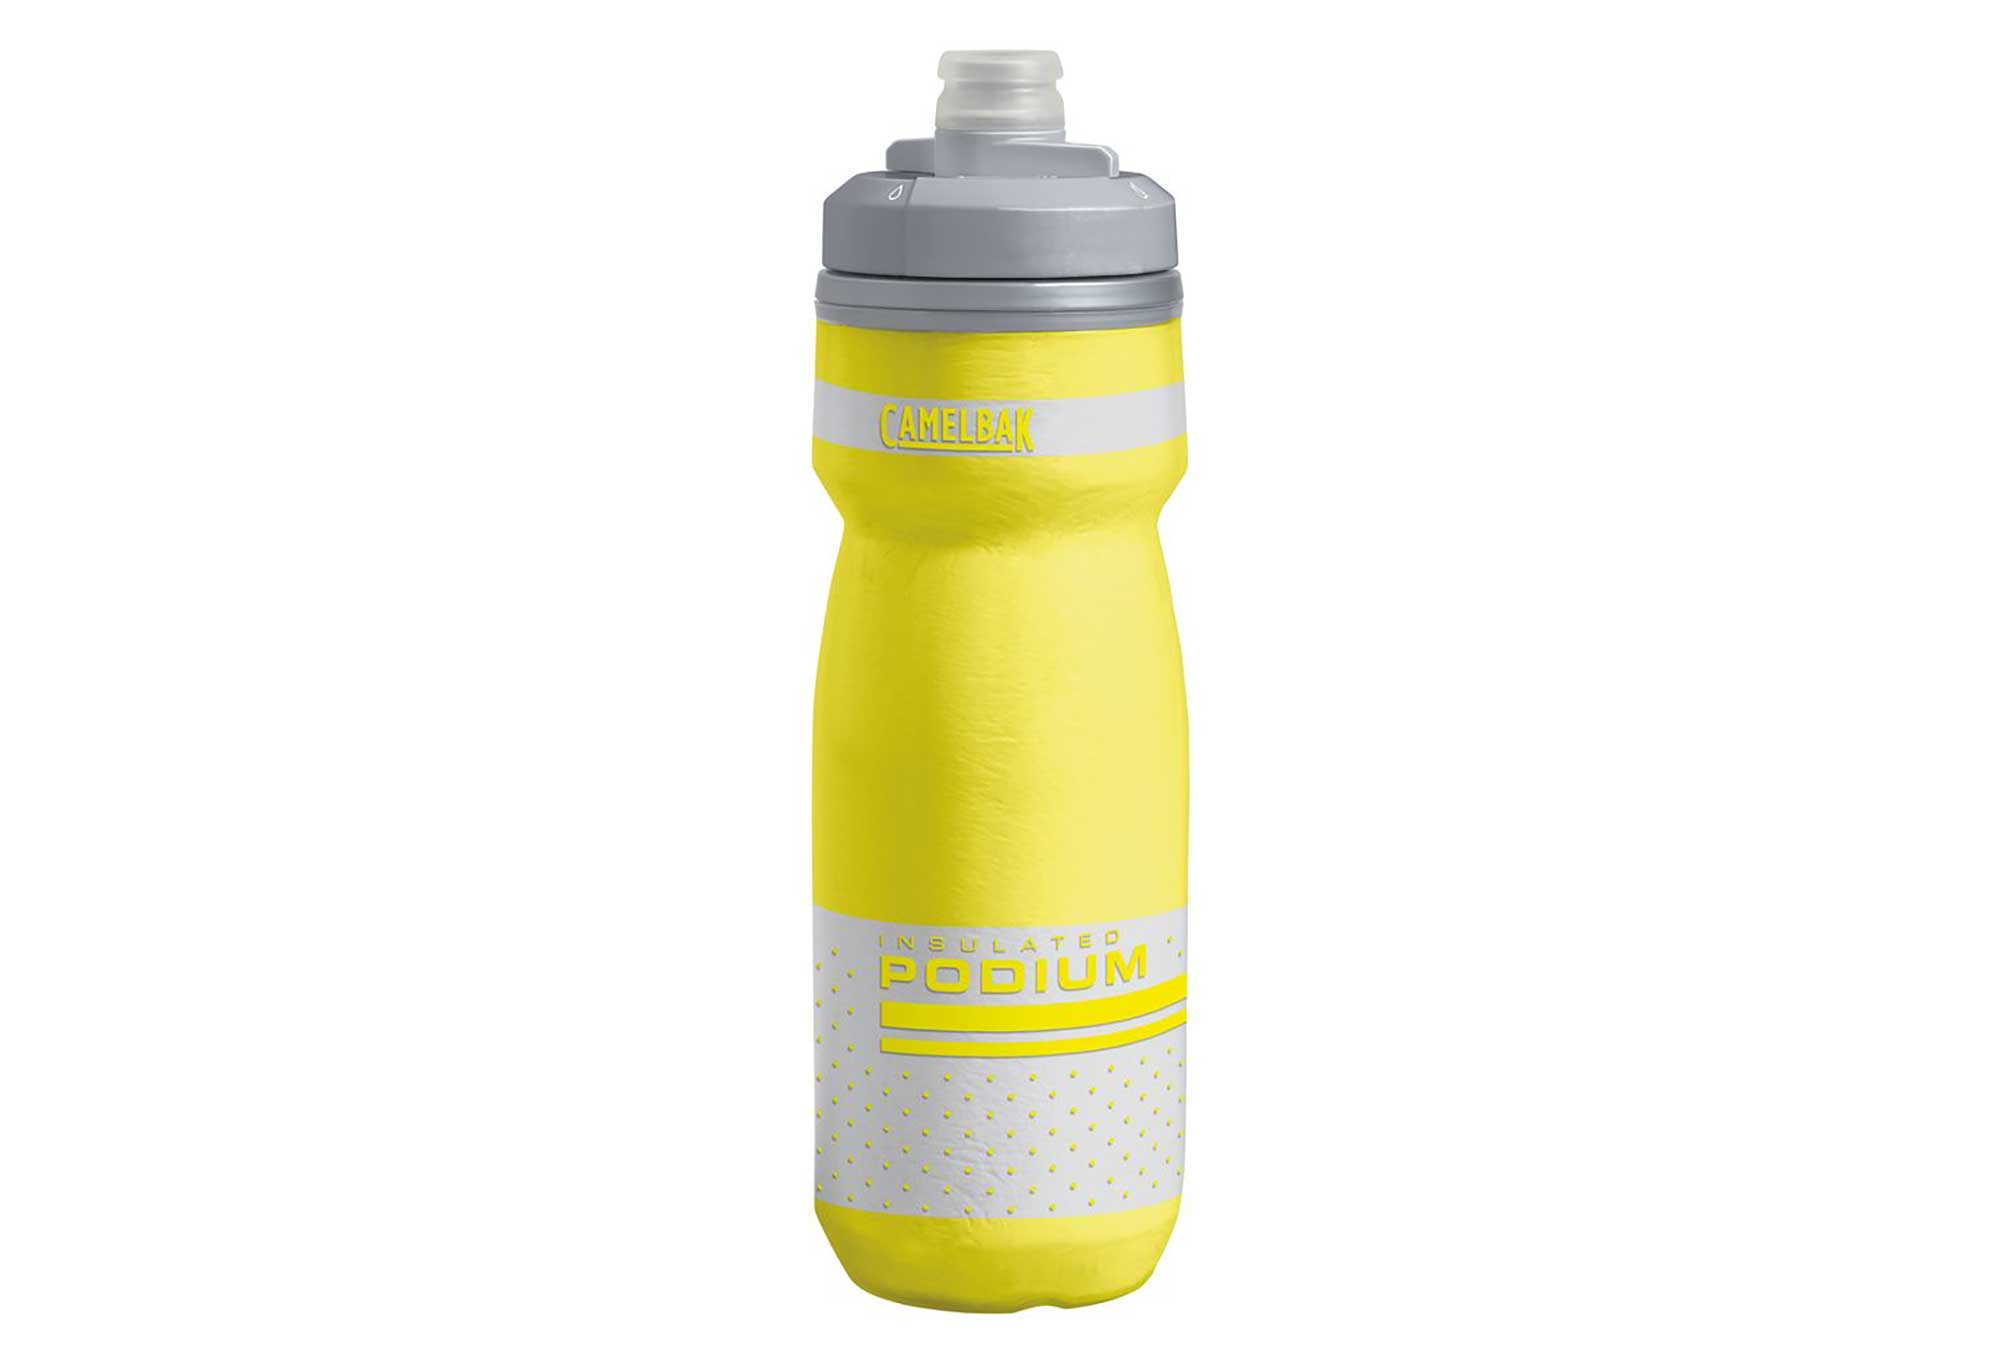 2018 sneakers uk store new cheap Camelbak Podium Chill Insulated Bottle 0.62 L Reflective Yellow